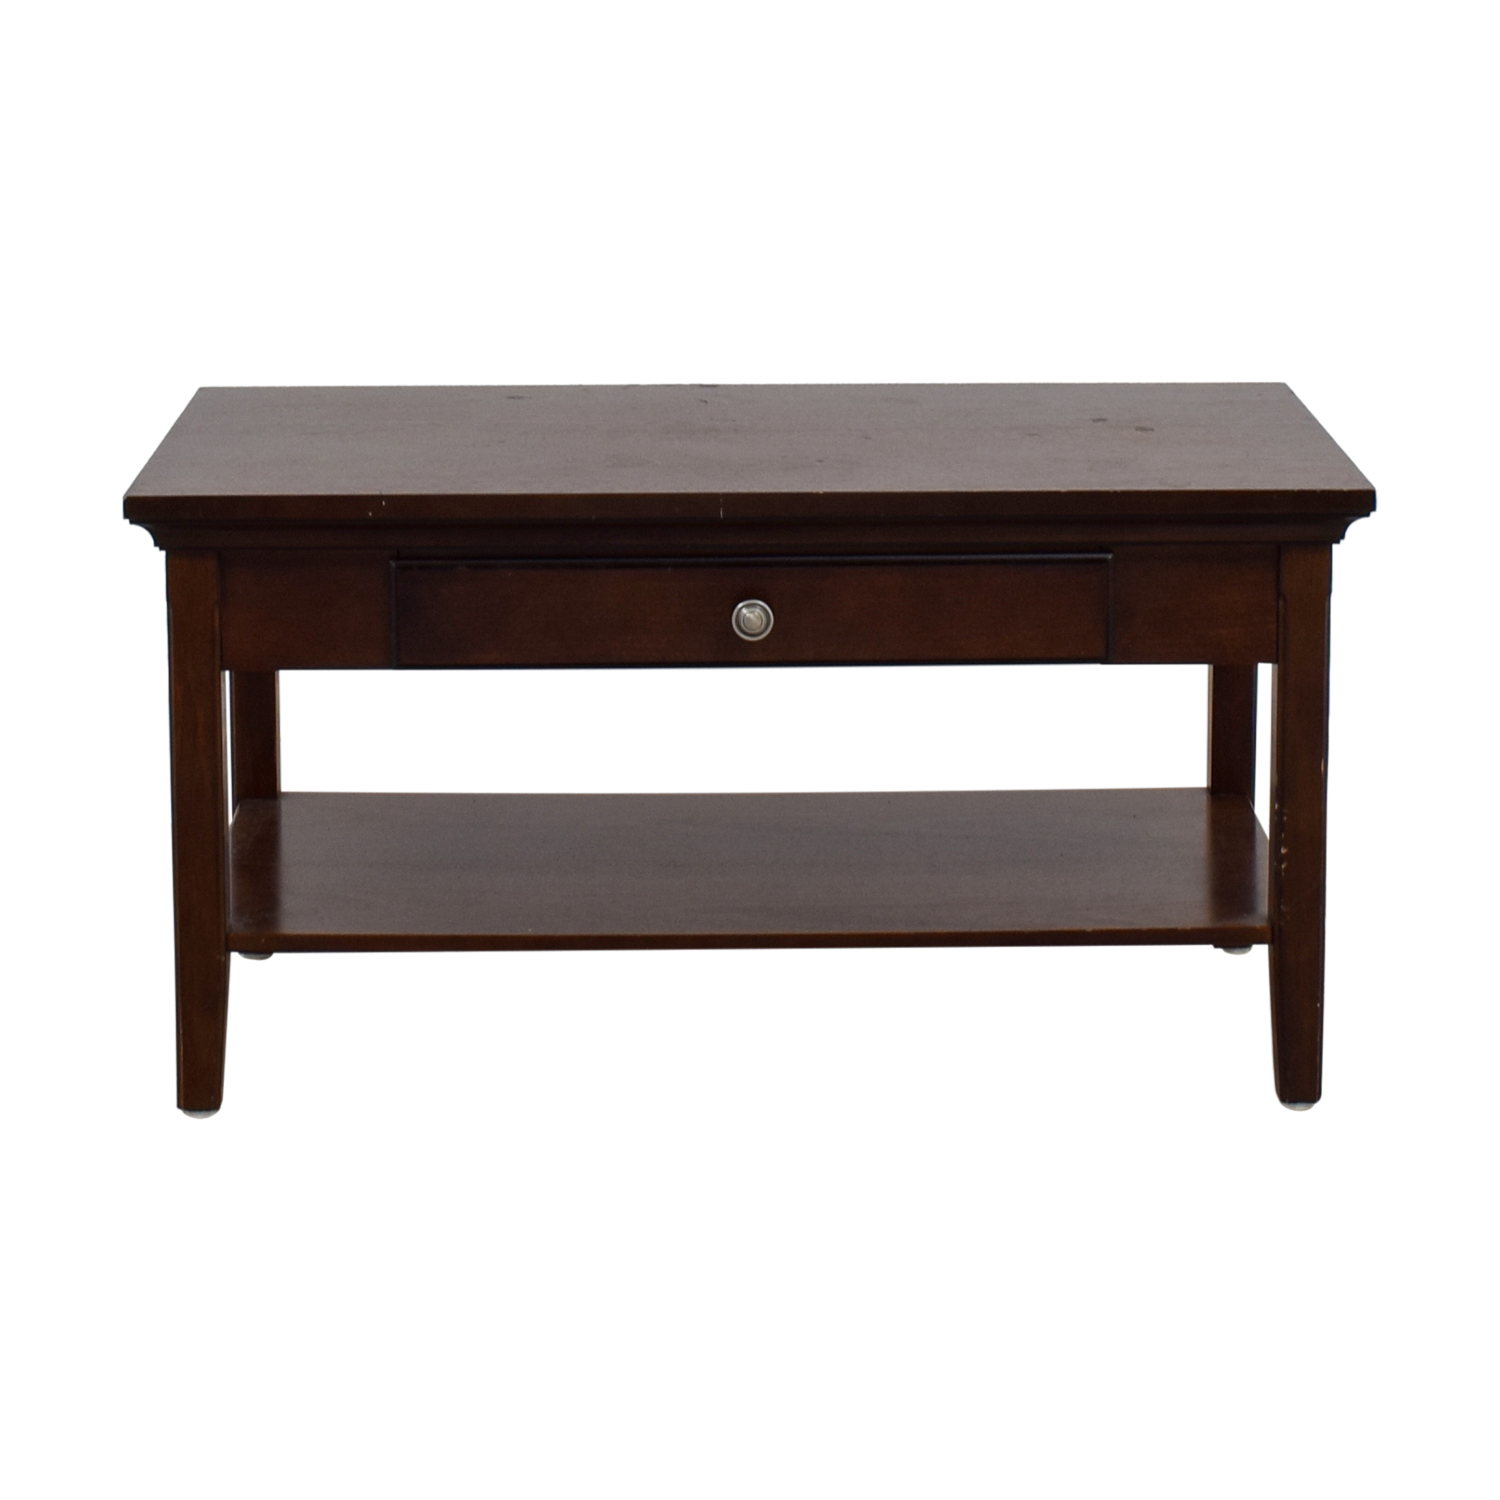 Wooden Classic Coffee Table Brown